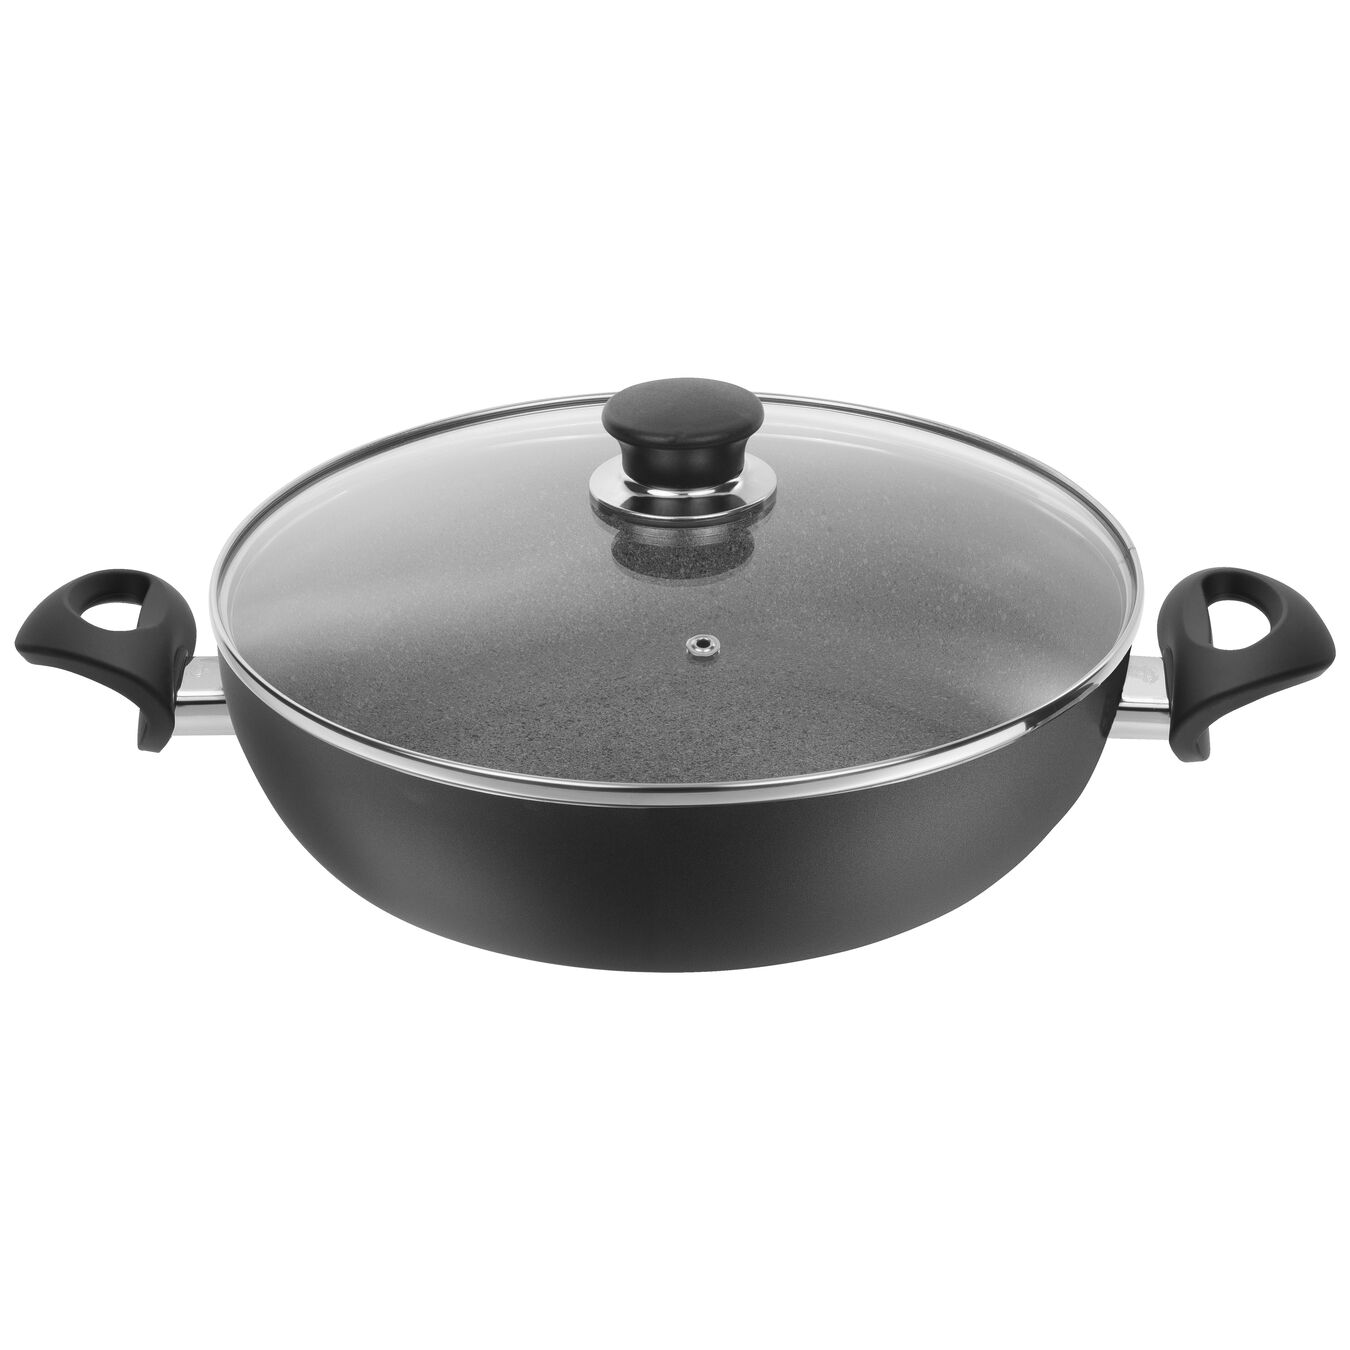 0,1 ml Aluminum round Sauteuse with lid, Grey,,large 1